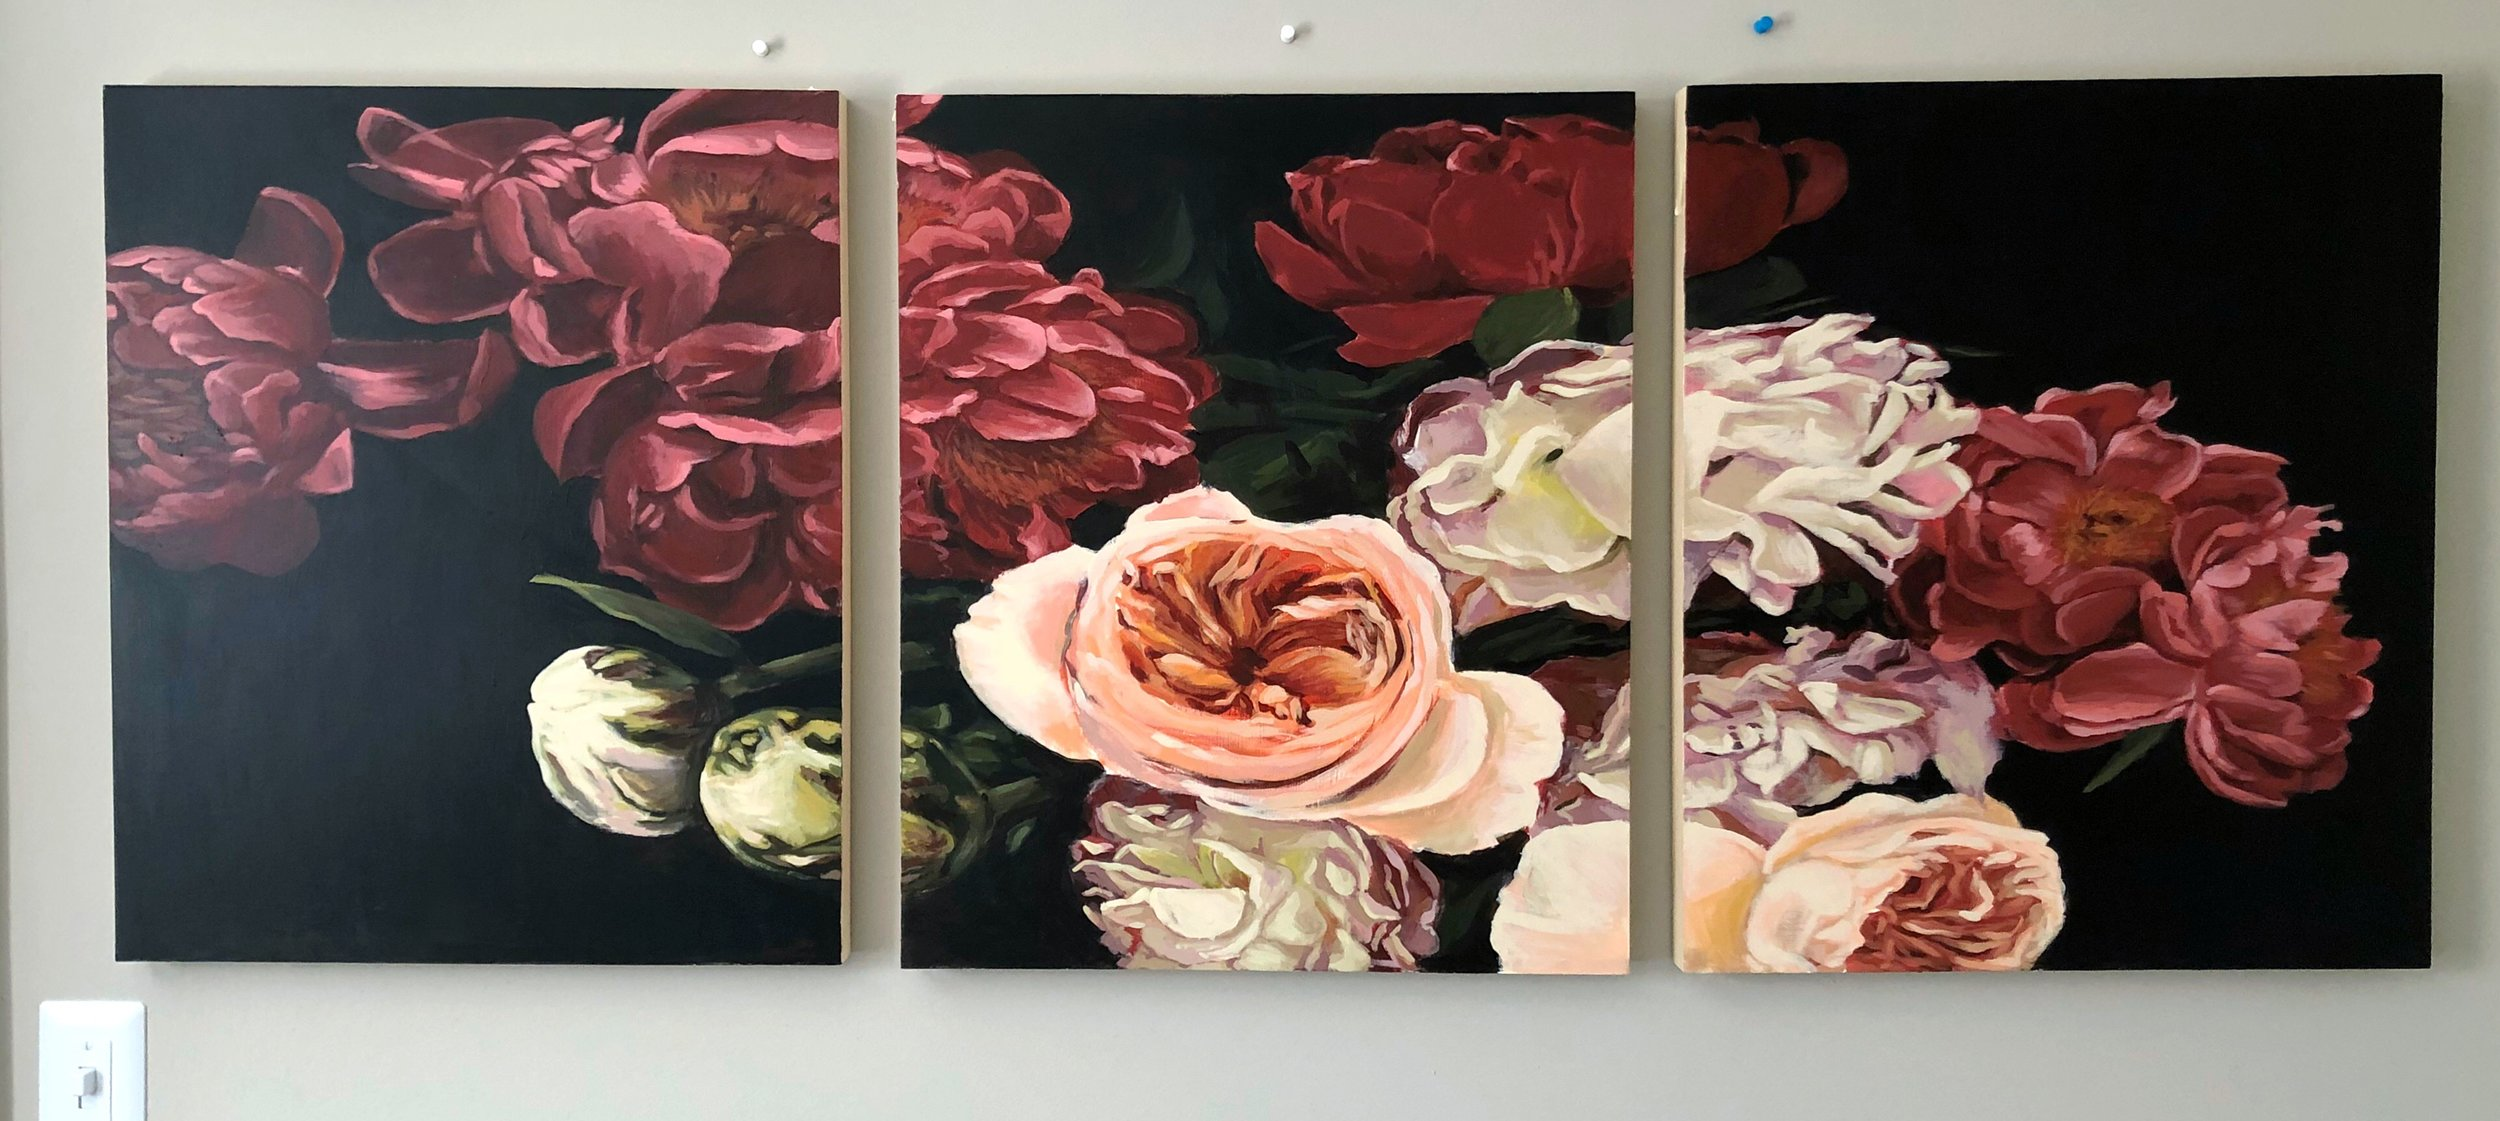 Floral Triptych - 2019 acrylic paintingPrivate Commission